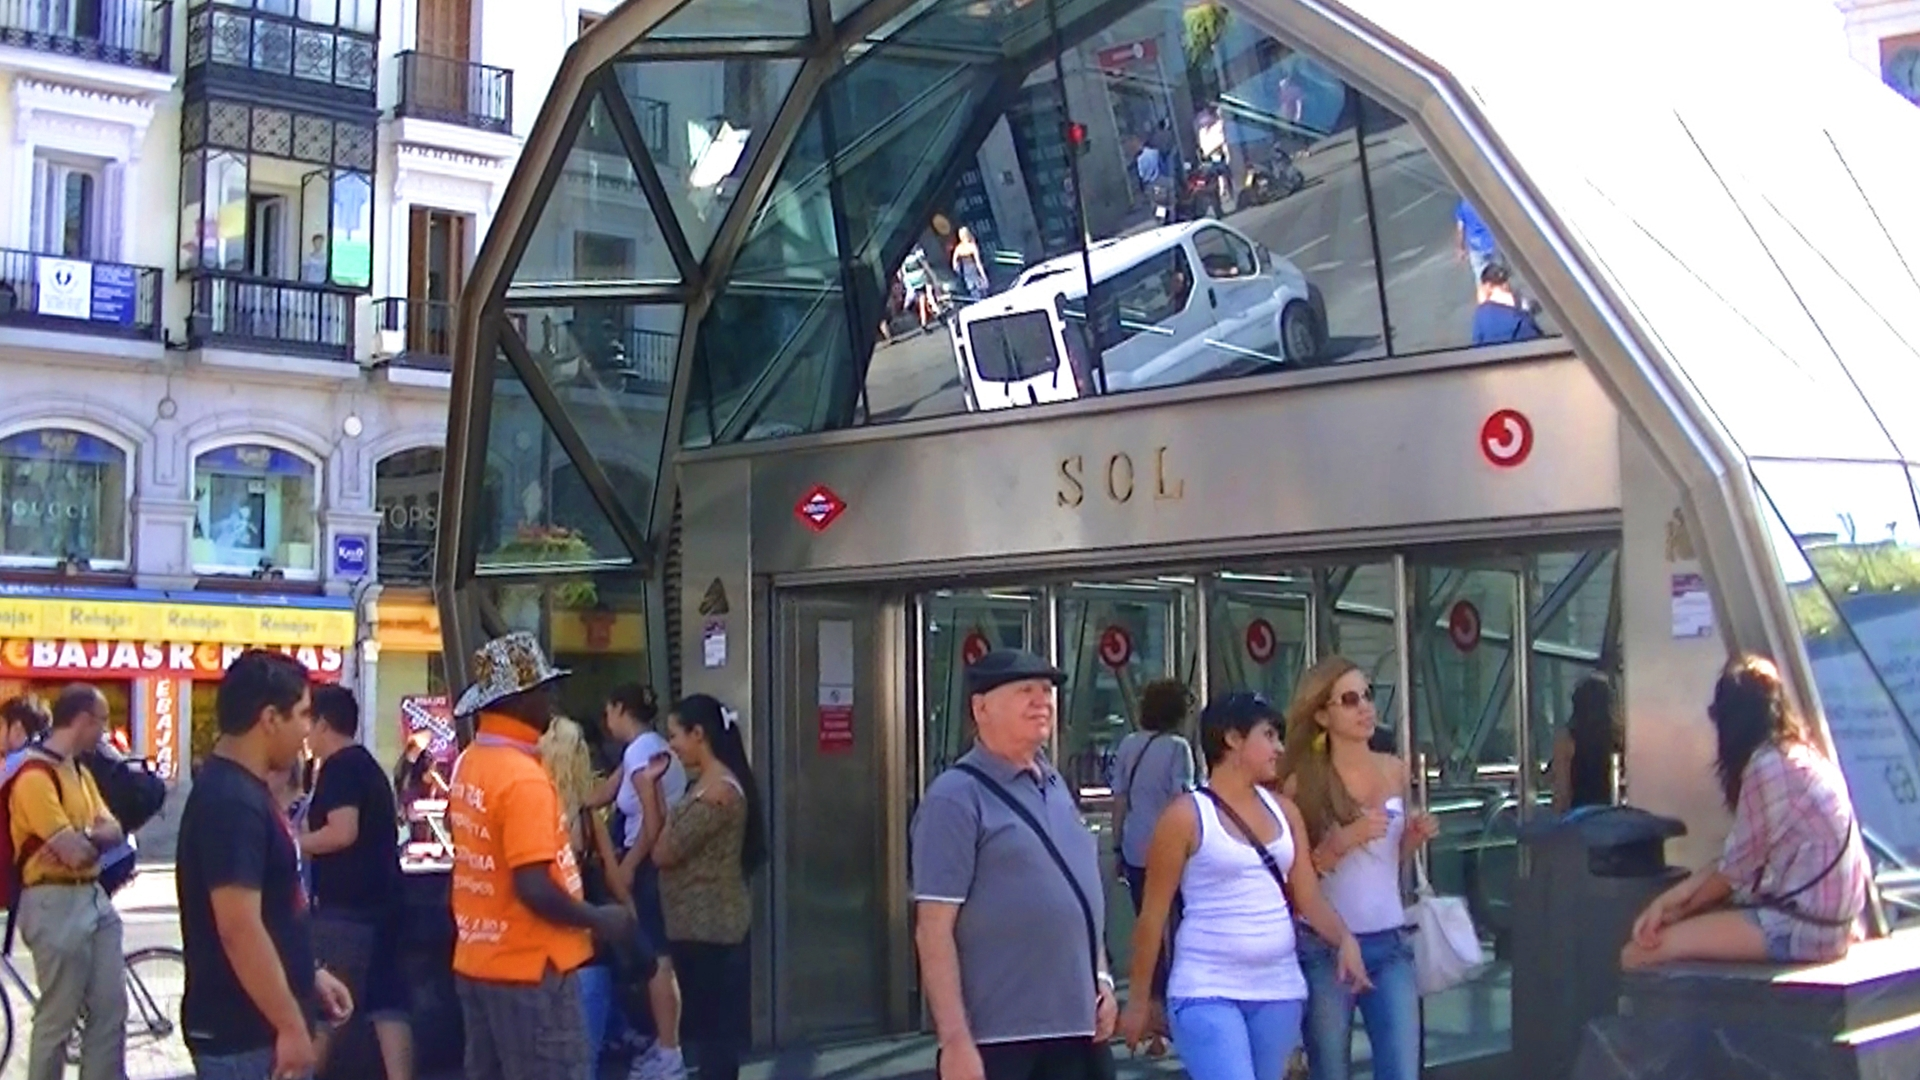 Places to go in madrid a photo blog for Puerta del sol madrid